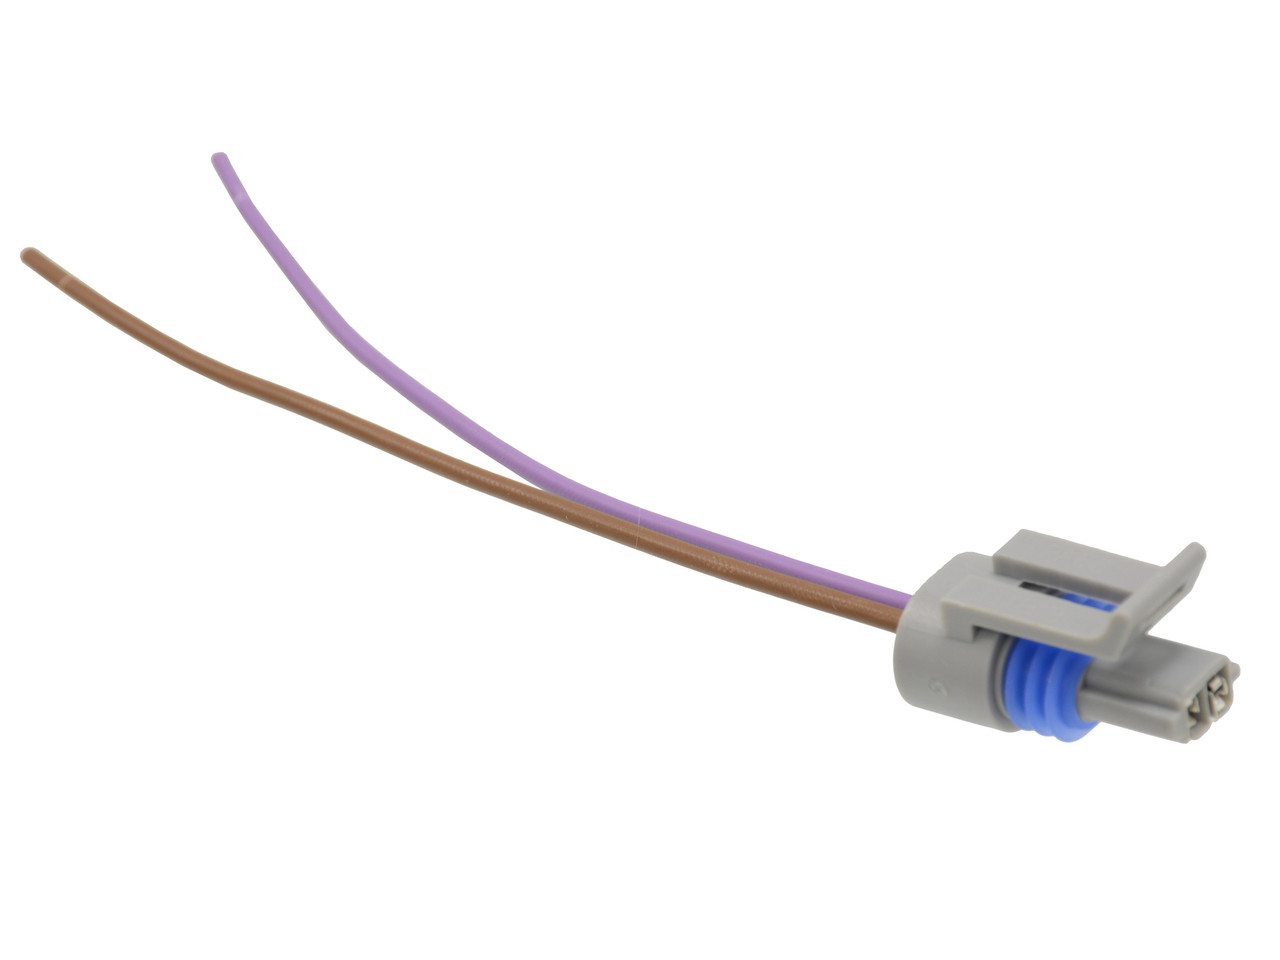 medium resolution of iat intake air temperature sensor wiring harness connector pigtail iat mat intake air temperature sensor wiring